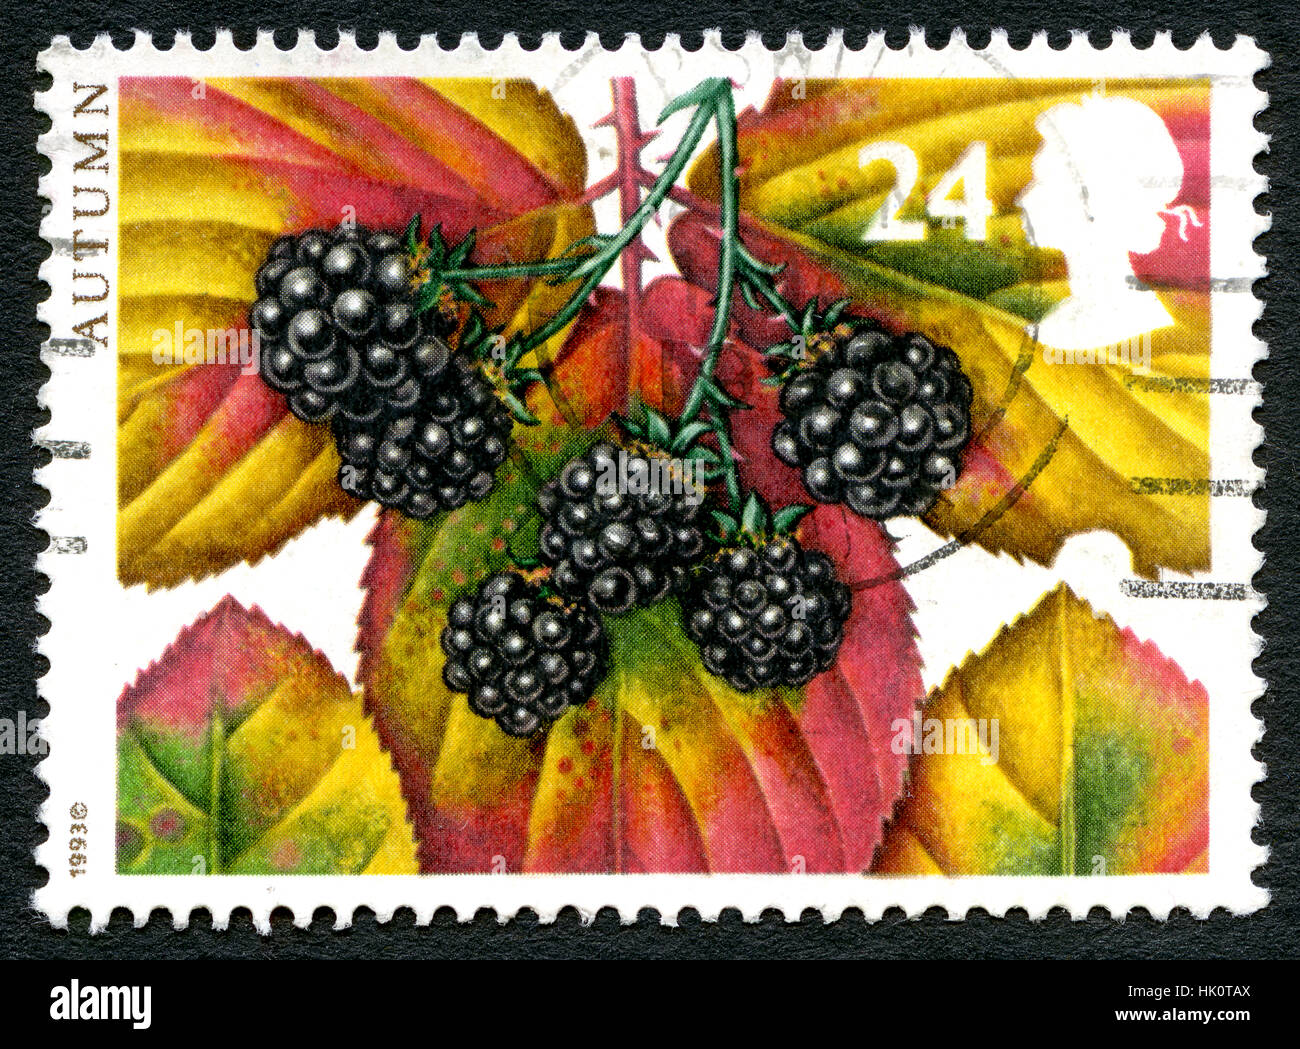 UK - CIRCA 1993: A postage stamp from the UK, celebrating the Autumn season with an illustration of Autumnal foliage. Stock Photo